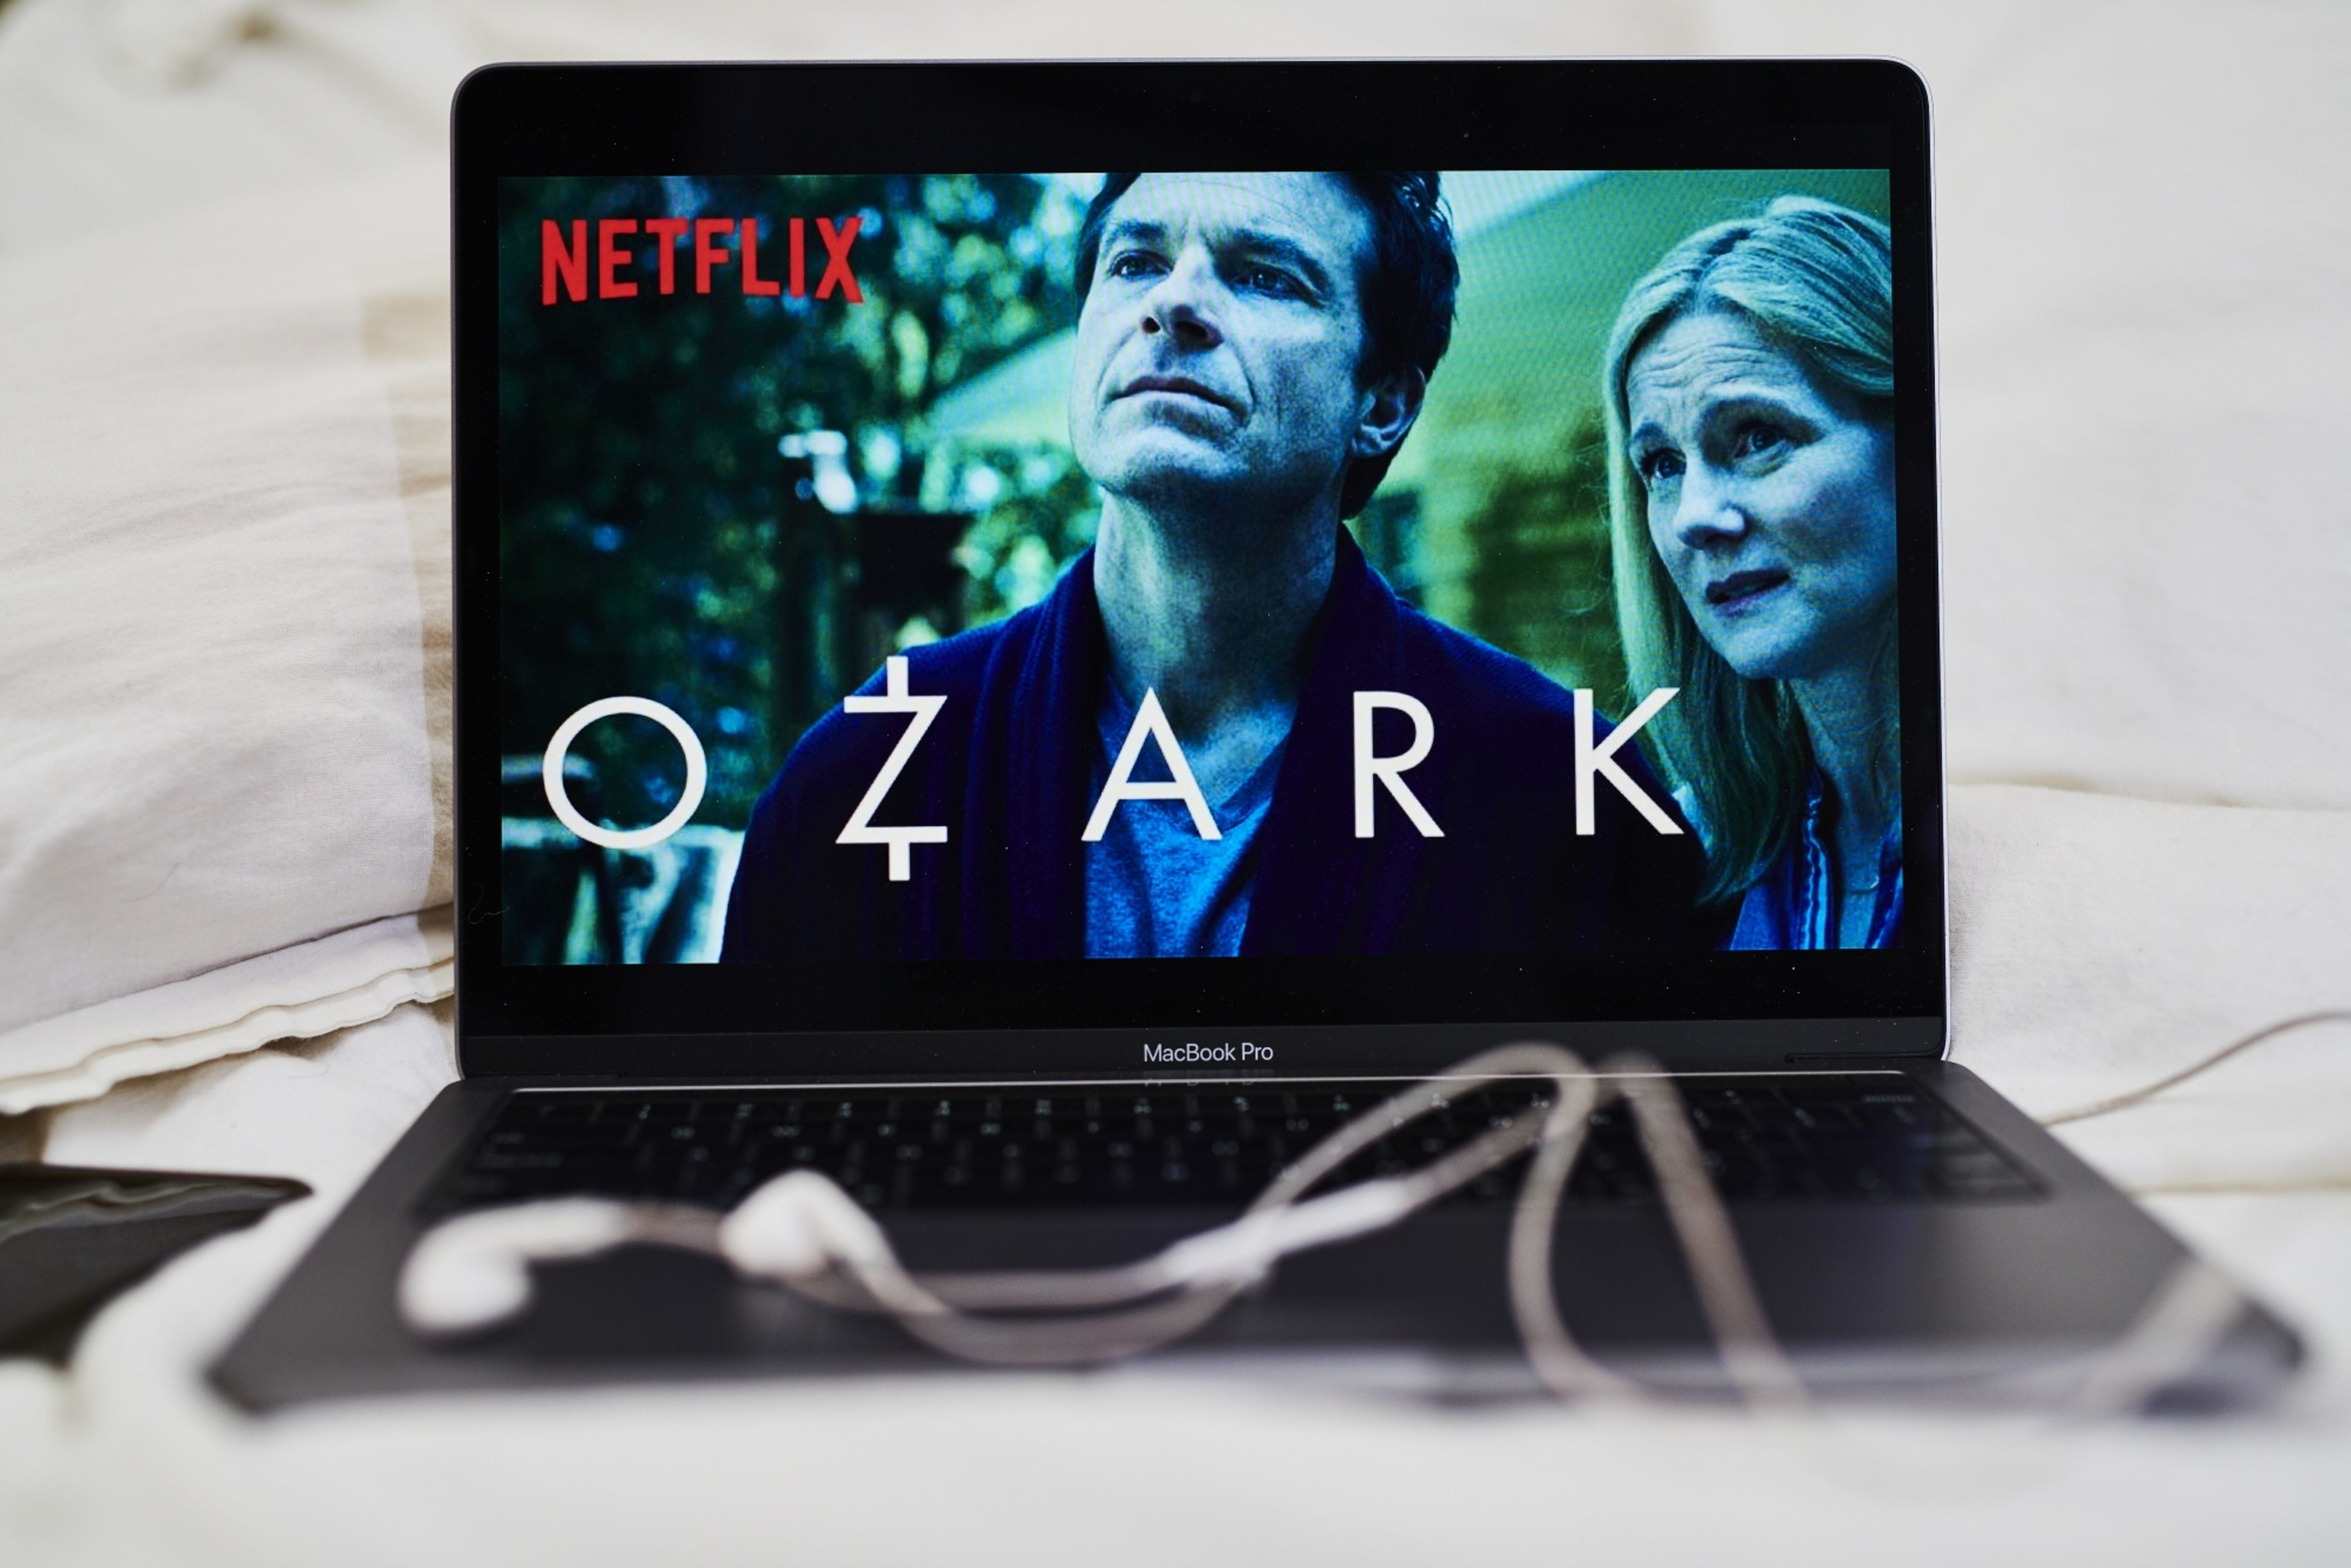 Netflix raises U.S. subscription price in sign of confidence